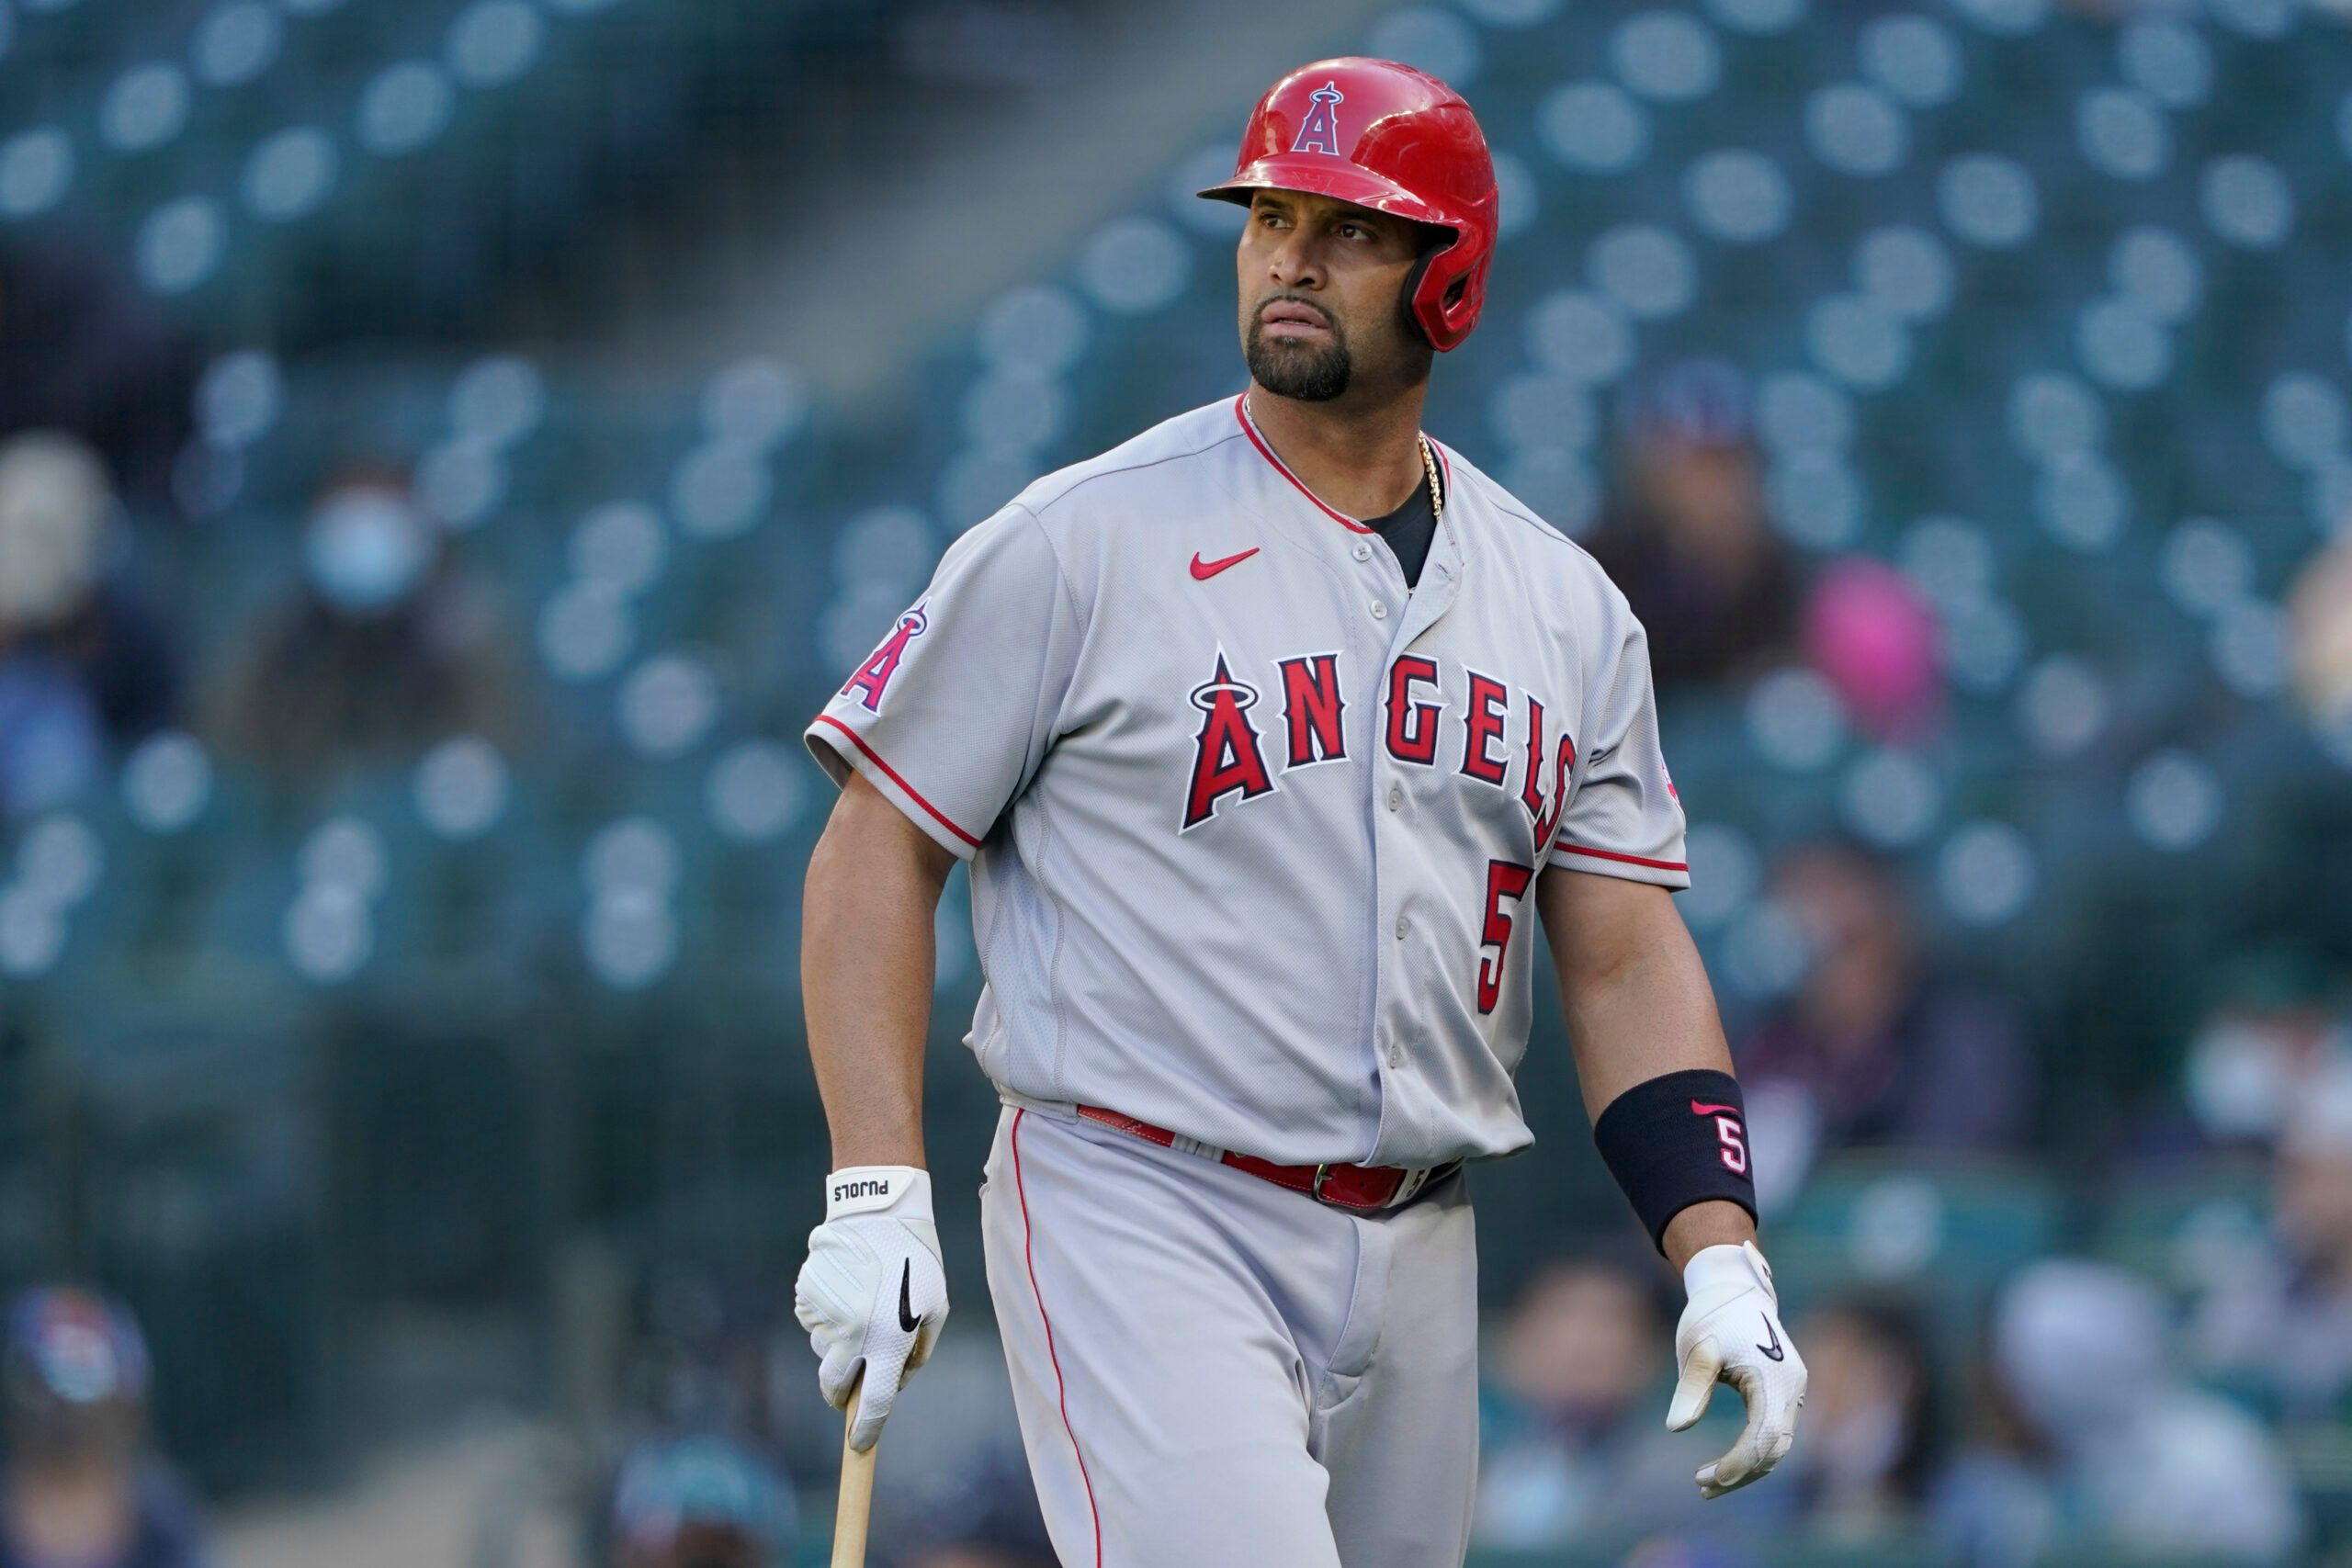 Slugger Albert Pujols Designated for Assignment by Angels - snopes